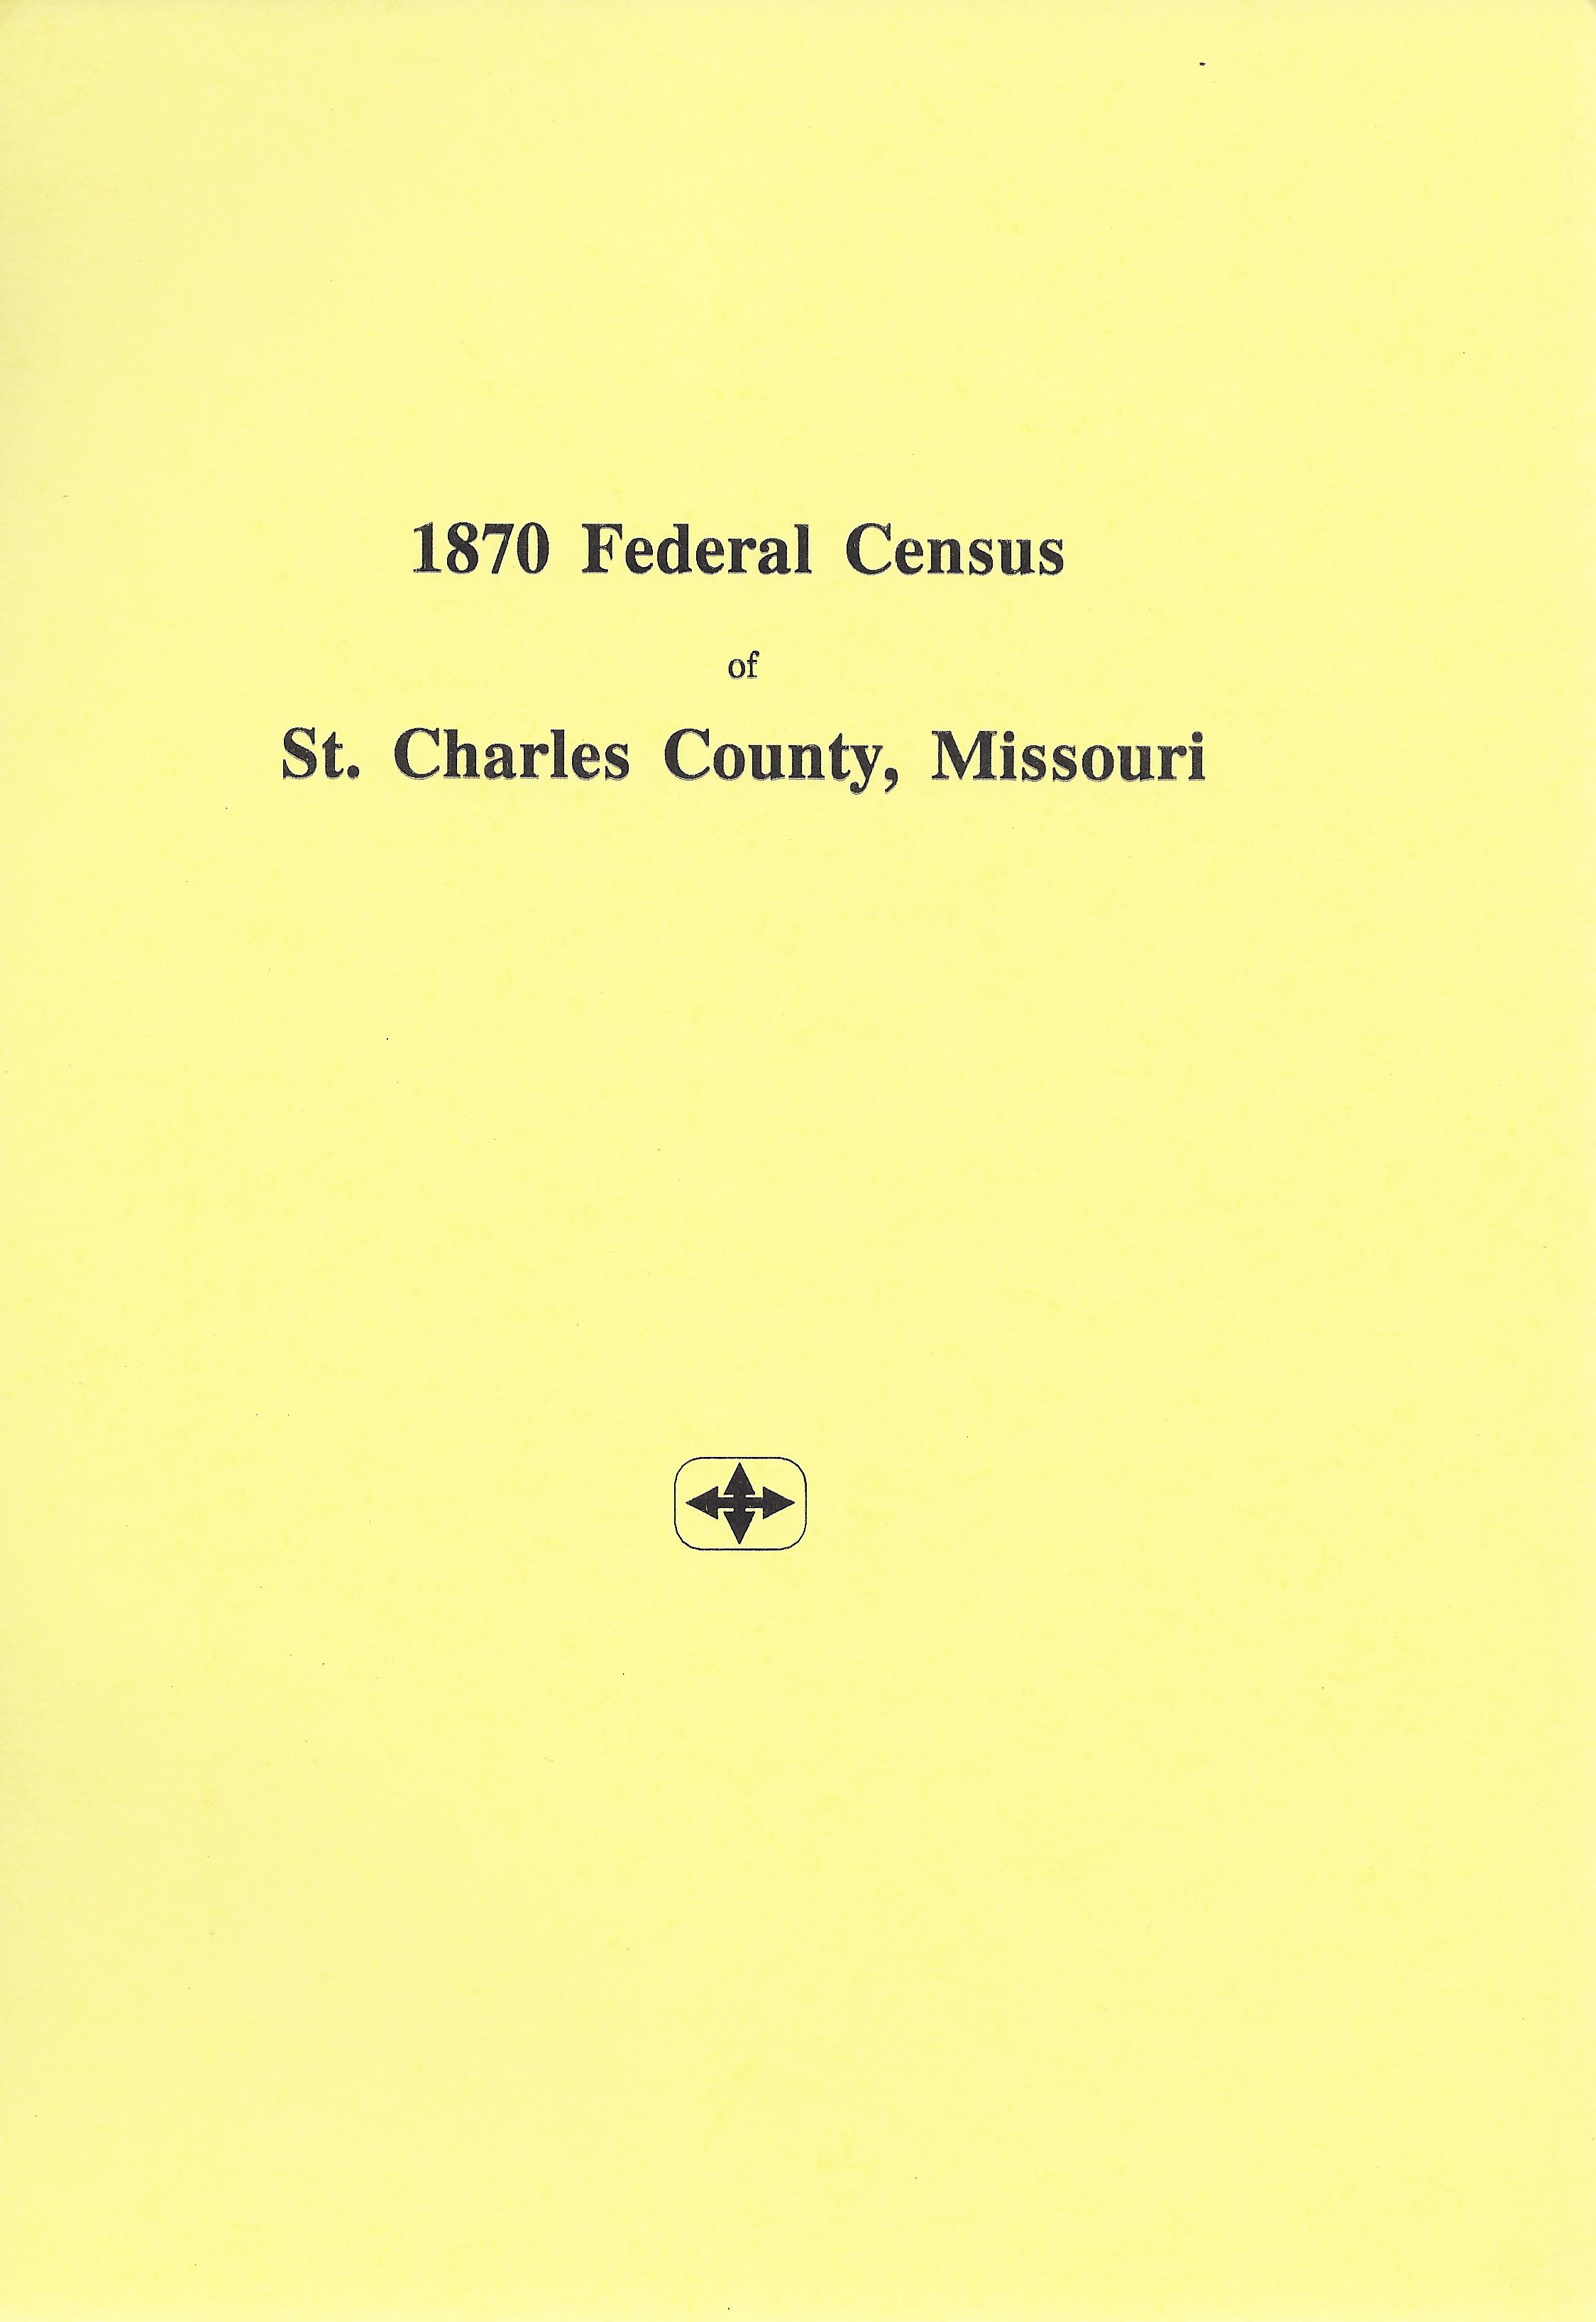 1870 Federal Census, St. Charles City Index